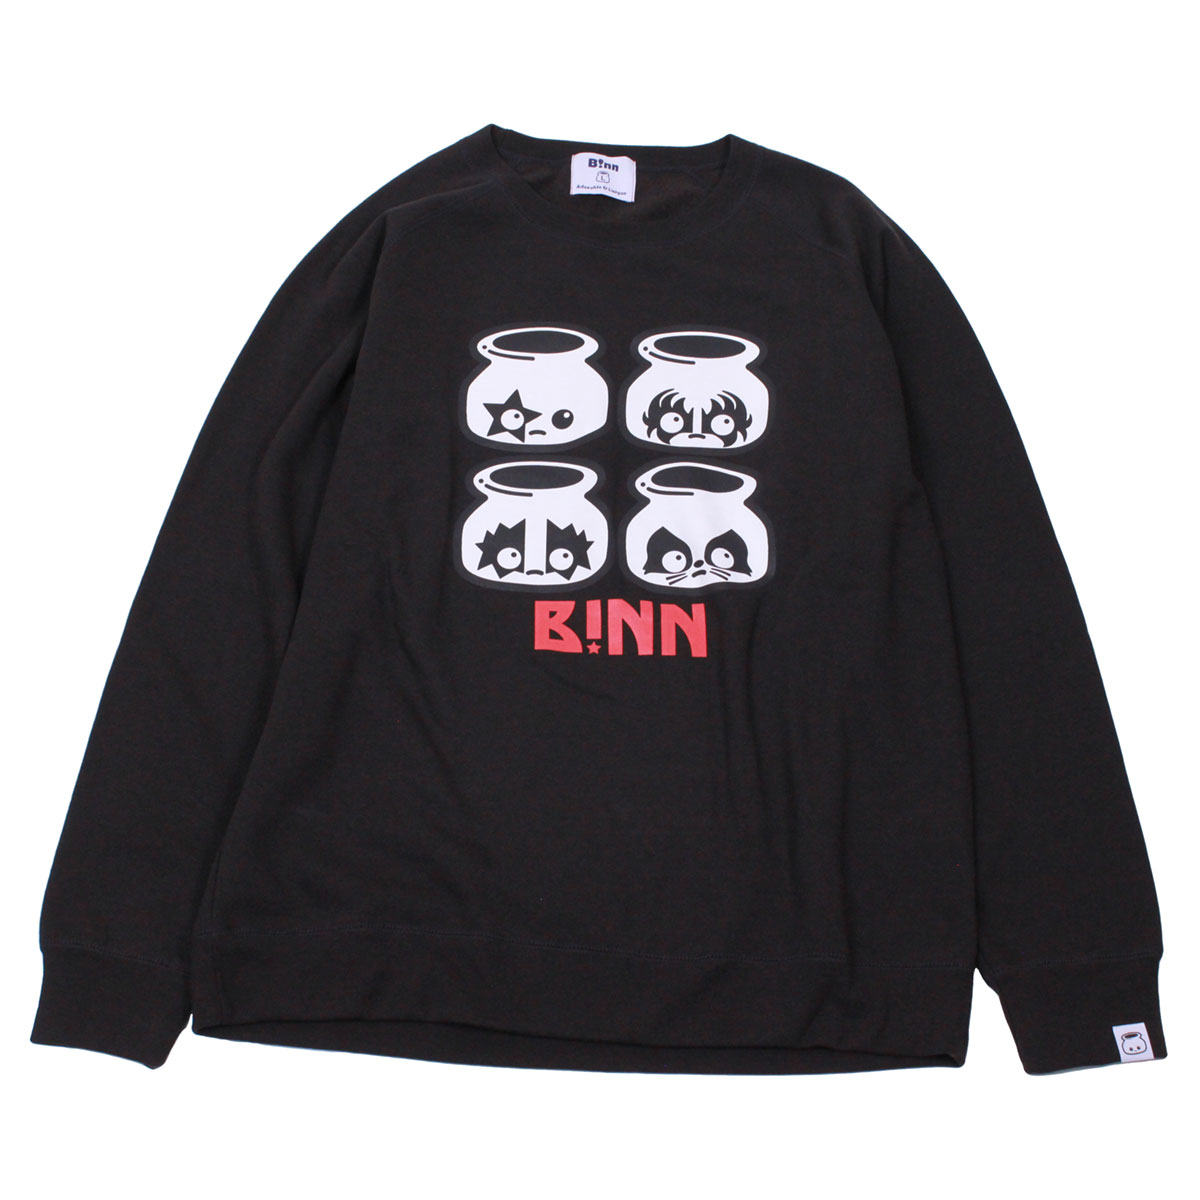 Rock'n B!nn Crew Neck Sweatshirt (Black)